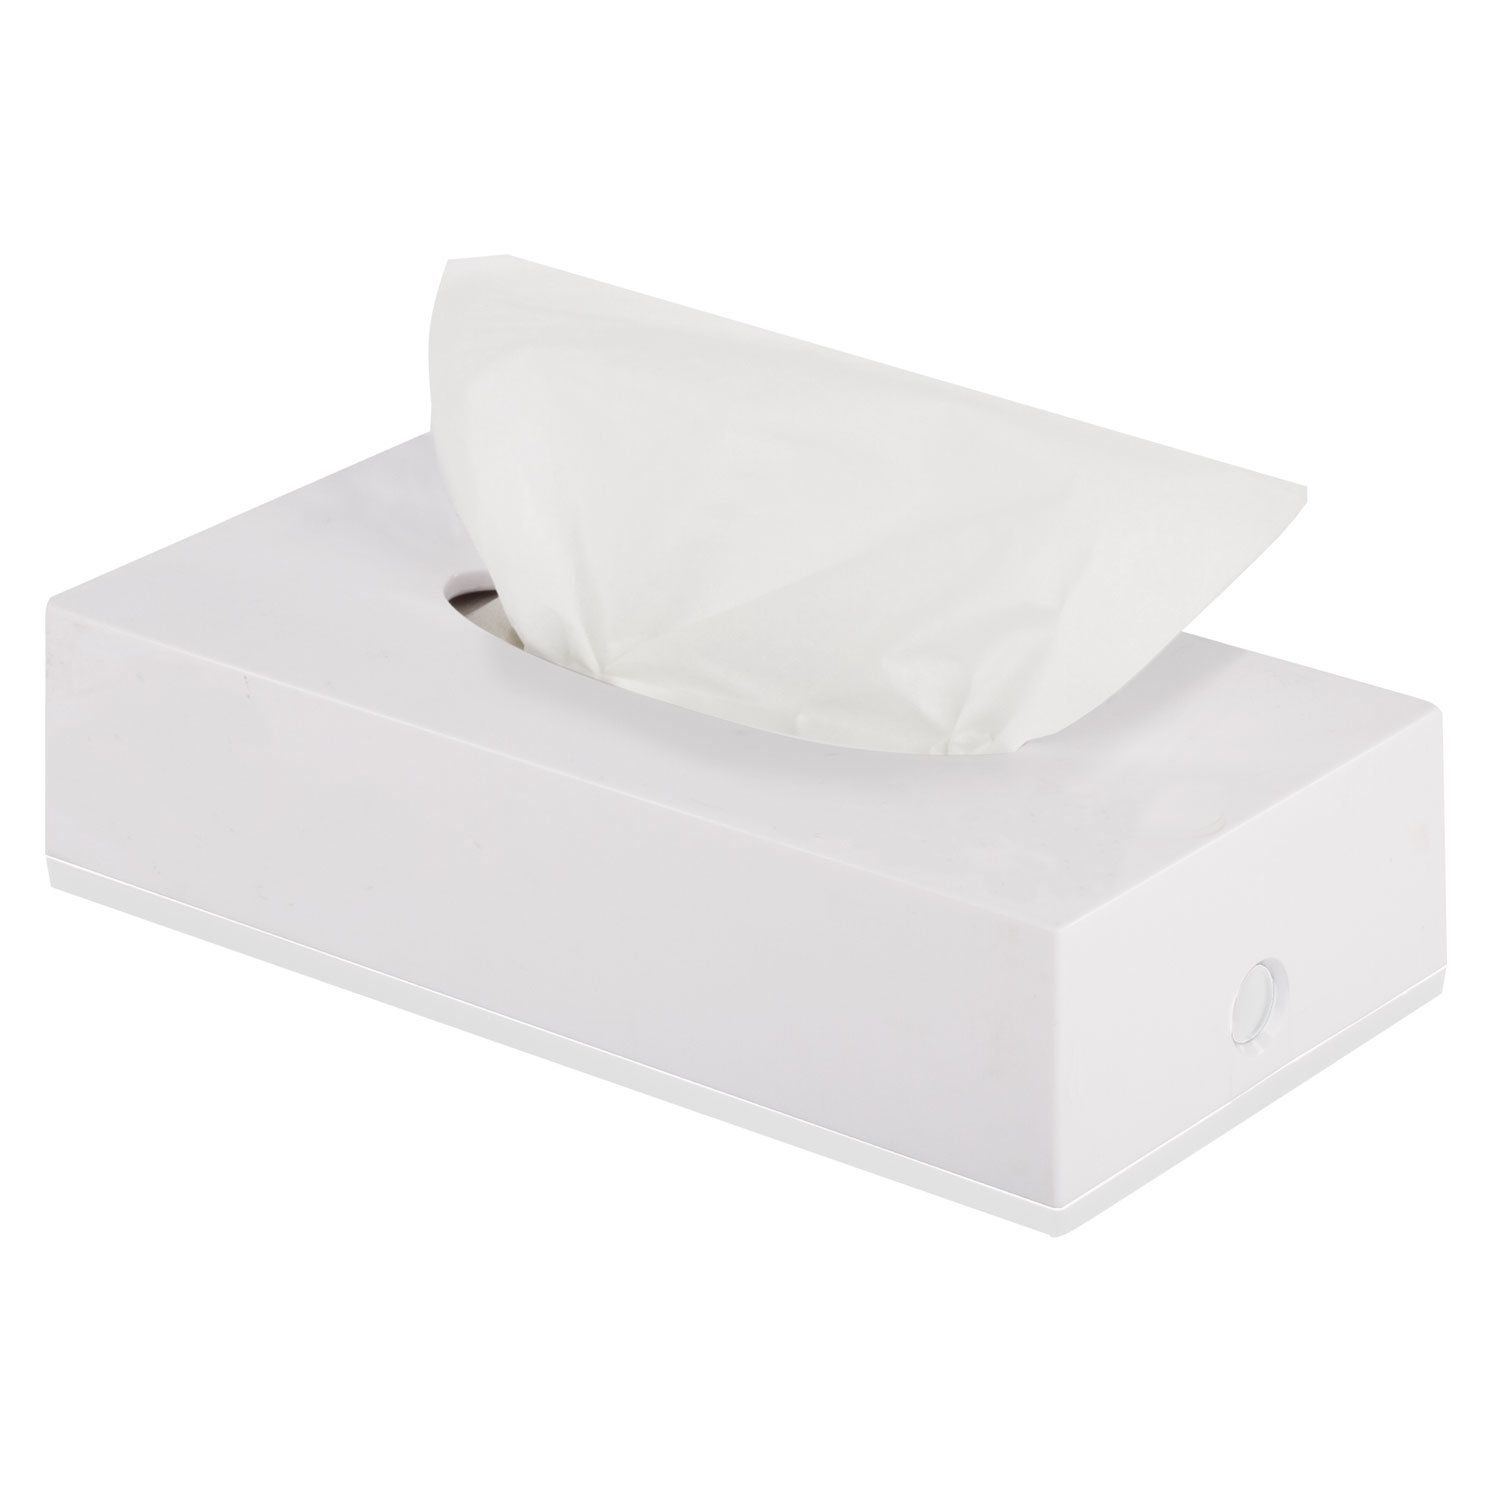 LIMA / Tabletop / wall-mounted cosmetic tissue dispenser, plastic, white